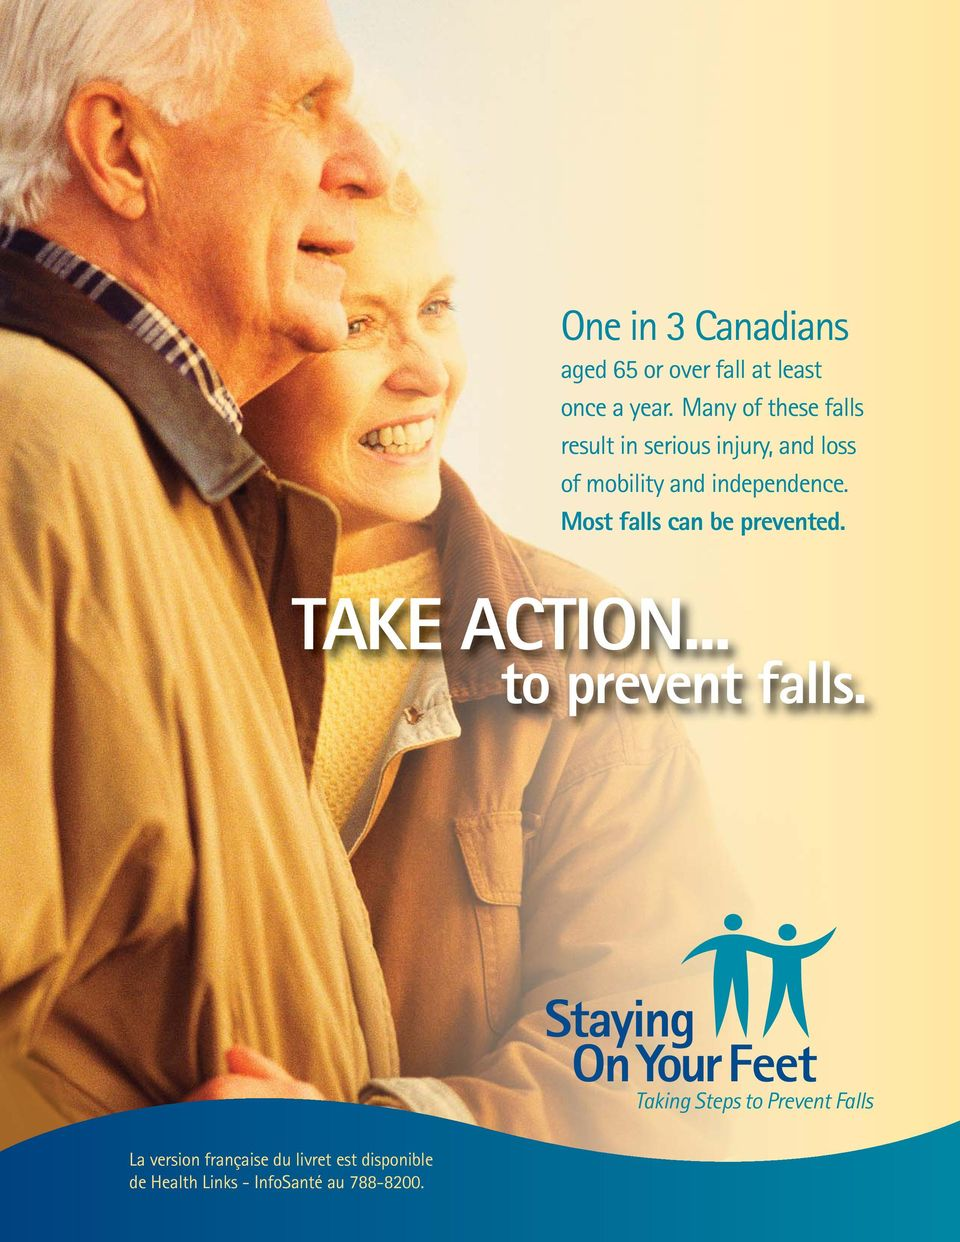 independence. Most falls can be prevented. TAKE ACTION... to prevent falls.